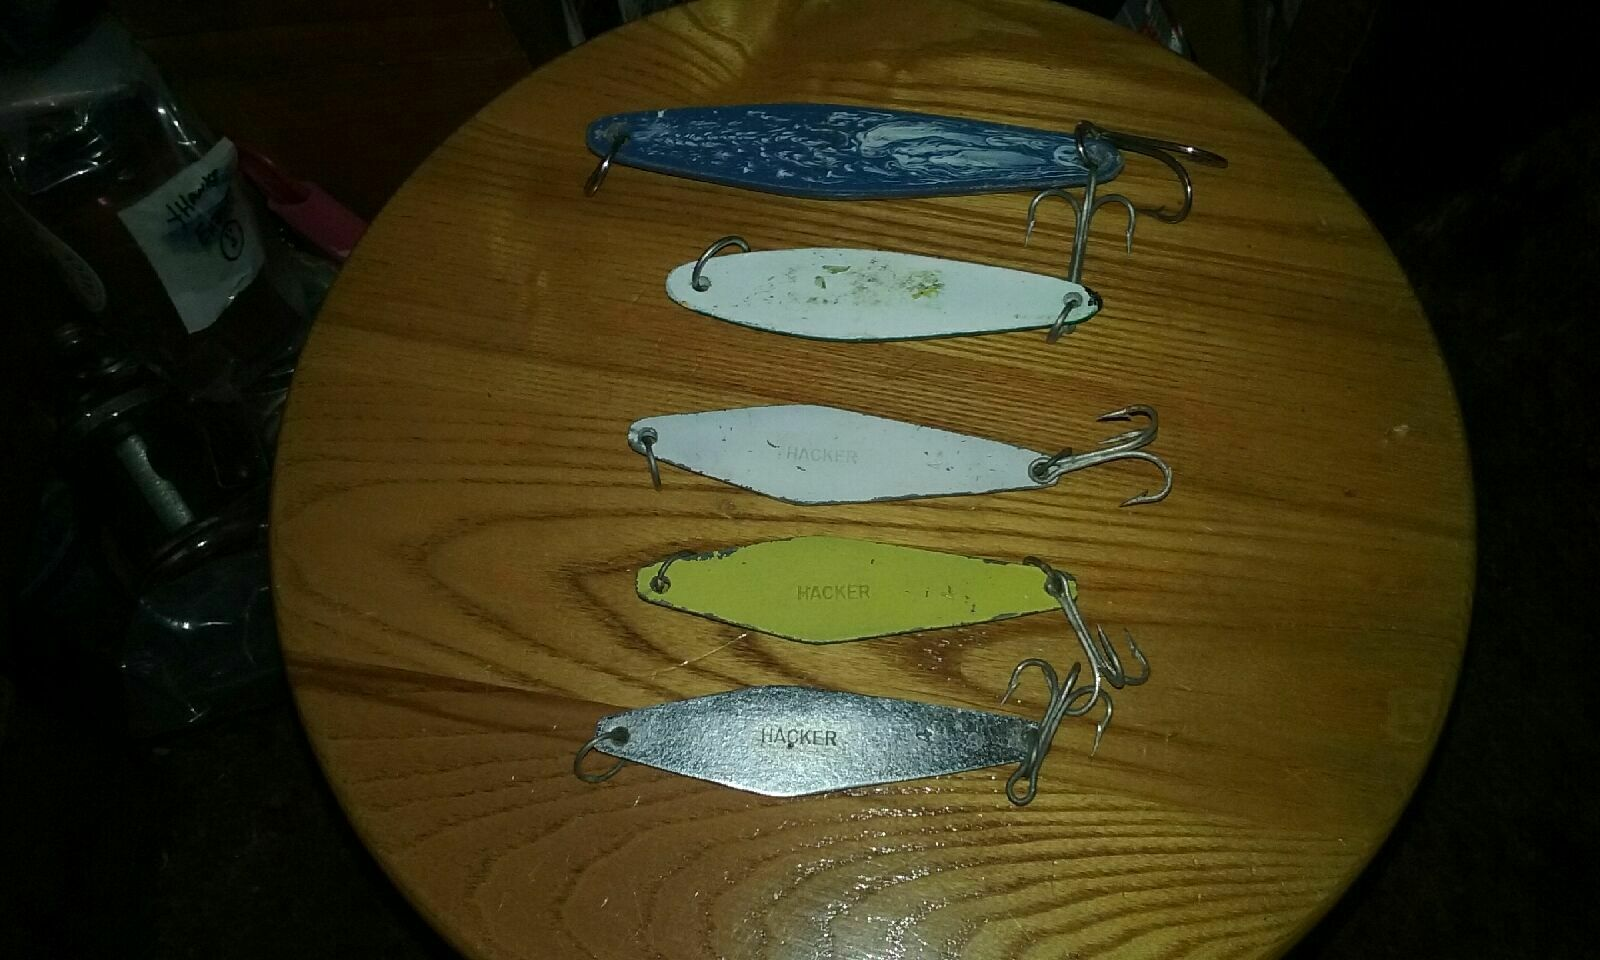 For Sale - Lot Of 5 Saltwater Fishing Lures Jigs - Hacker